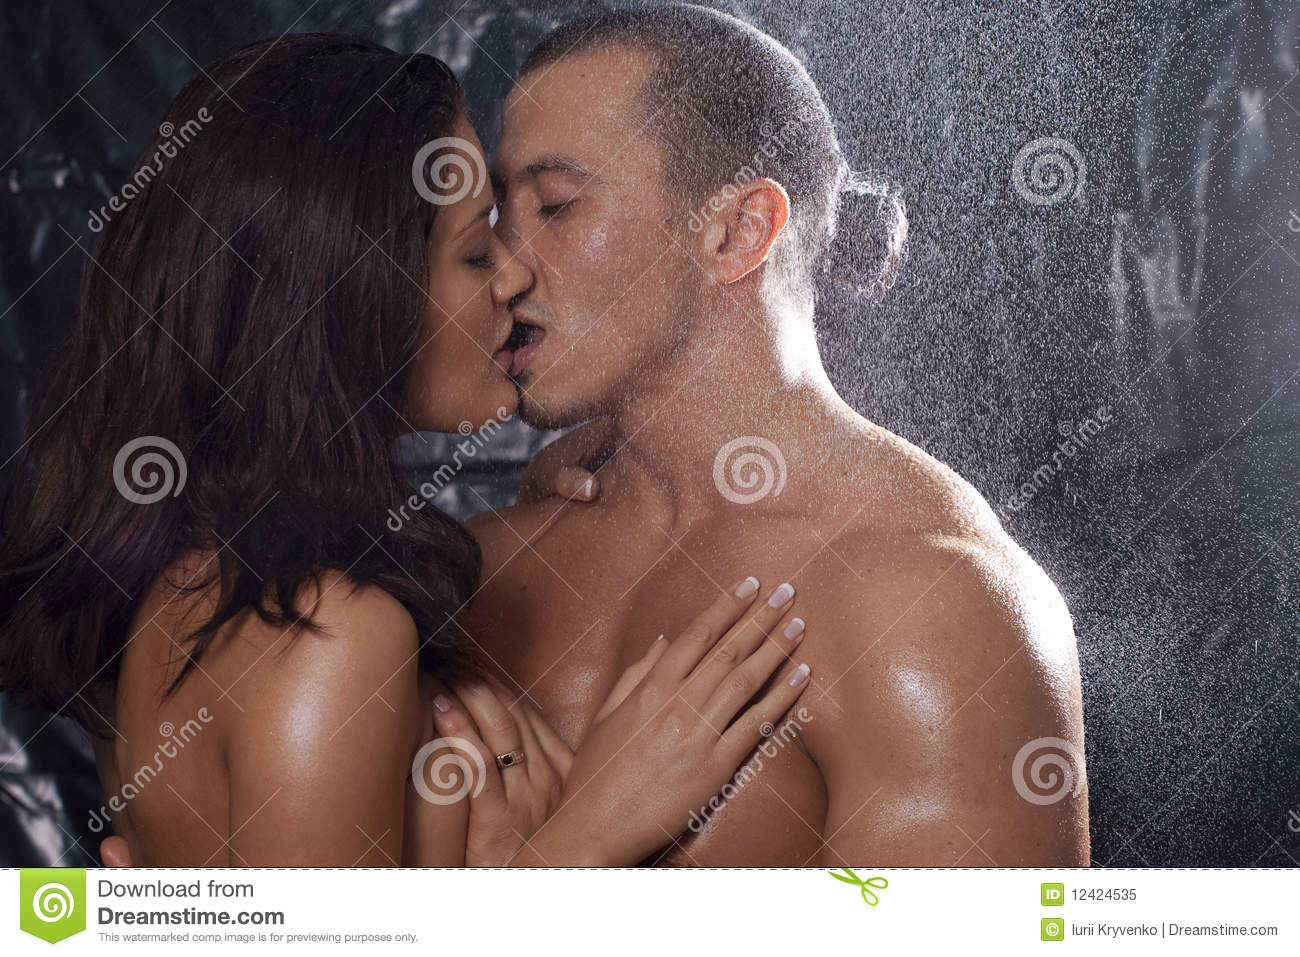 The question Couples naked in shower kissing speaking, opinion